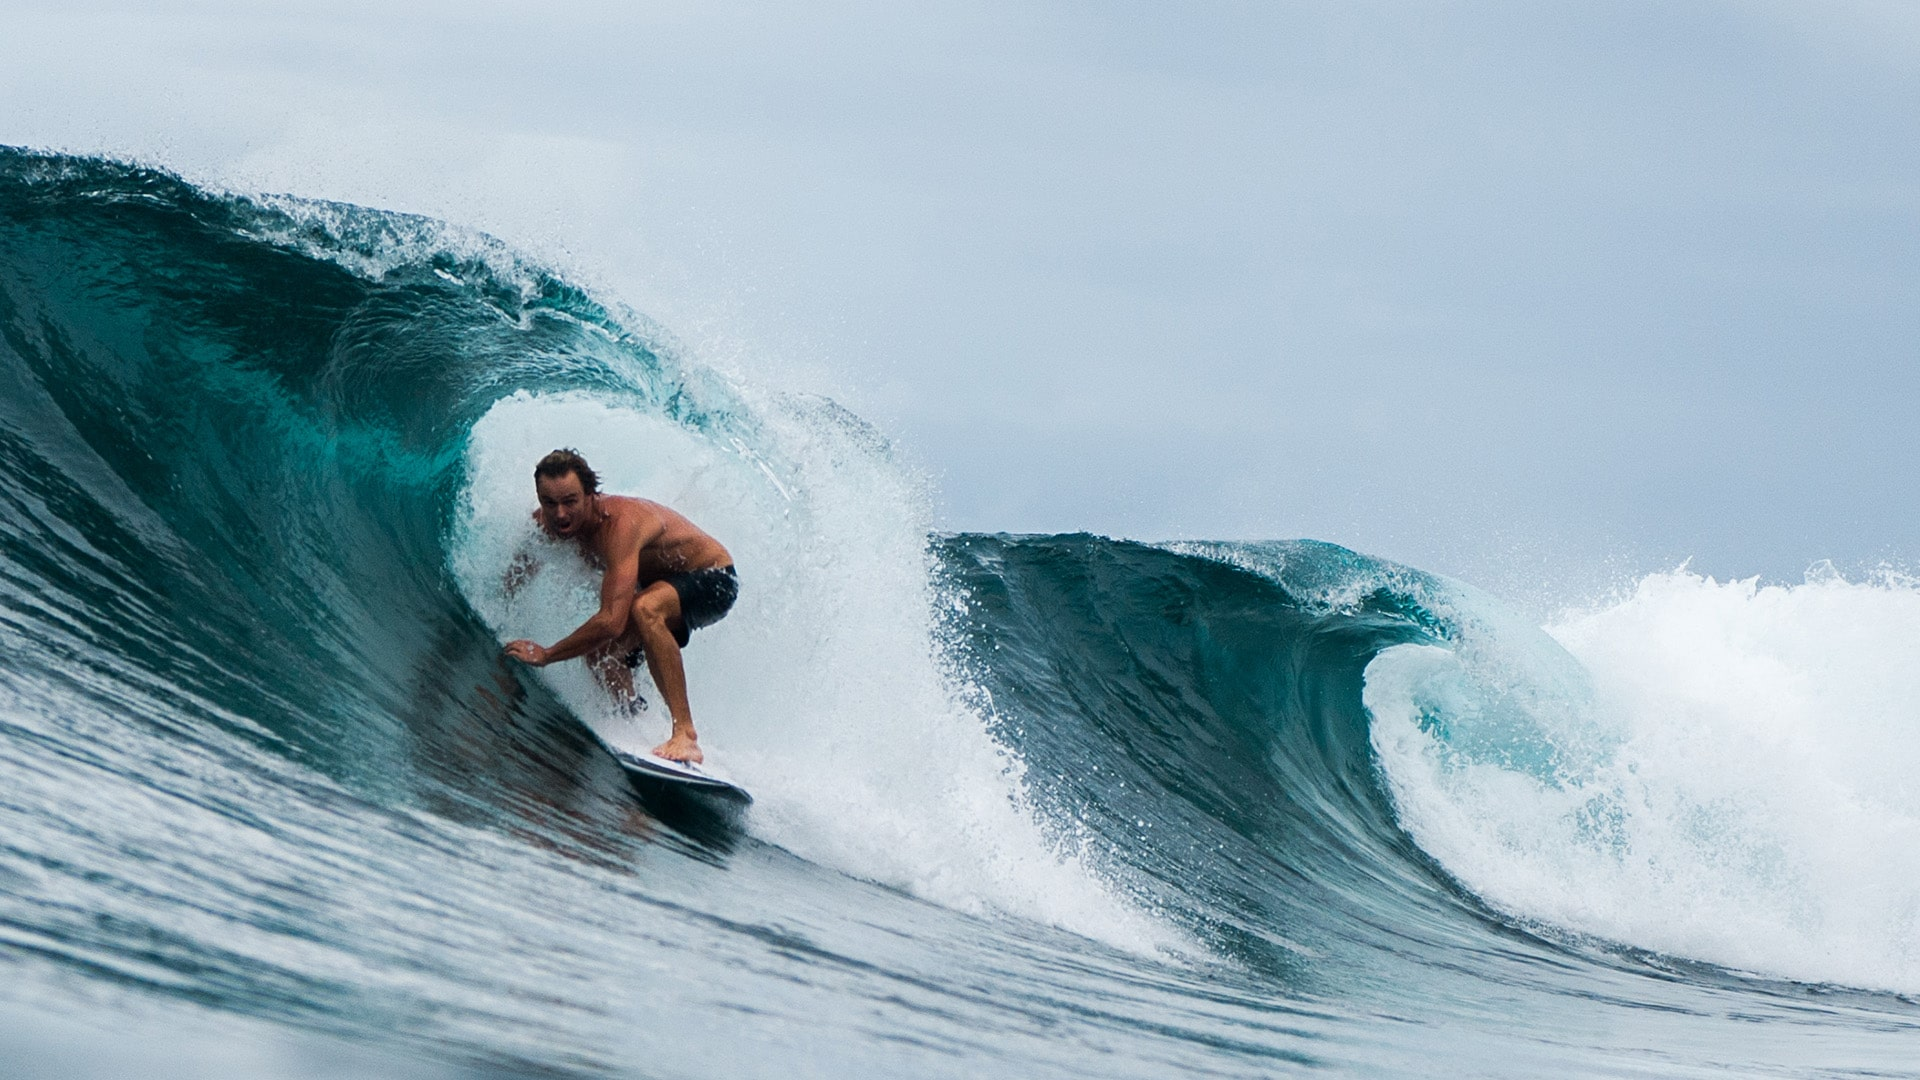 Kudanil Explorer surfer Harrison Roach barreled in tropical wave in Papua